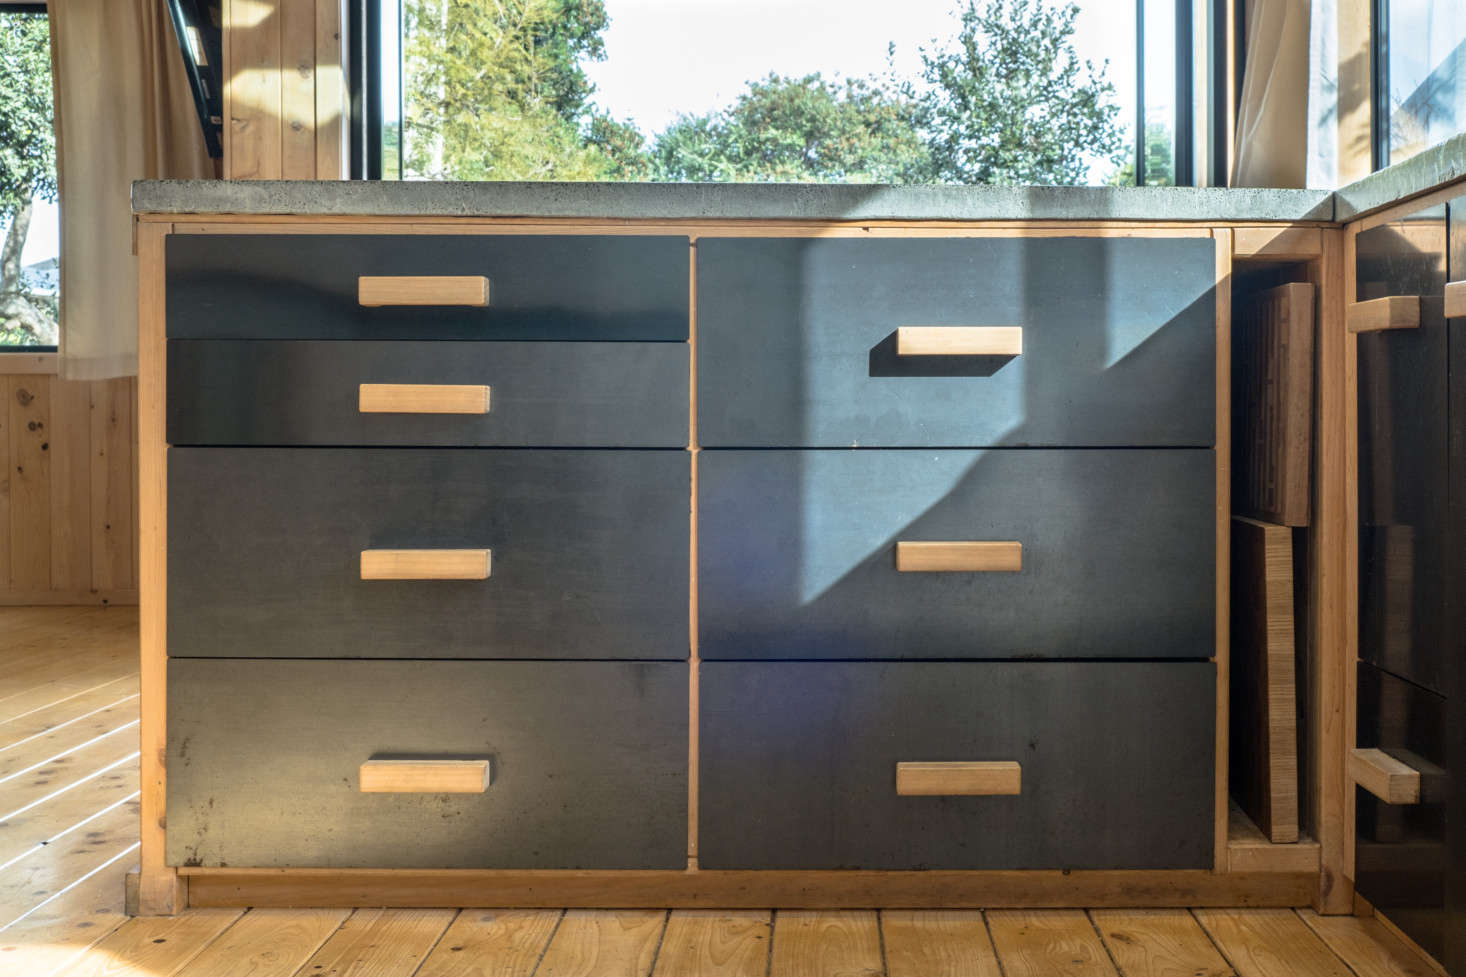 """The steel-fronted drawers have handmade wooden pulls. In hindsight, George says, it would have been more cost-effective to buy kitchen cabinets than to build them: """"sometimes doing it yourself actually costs more."""""""